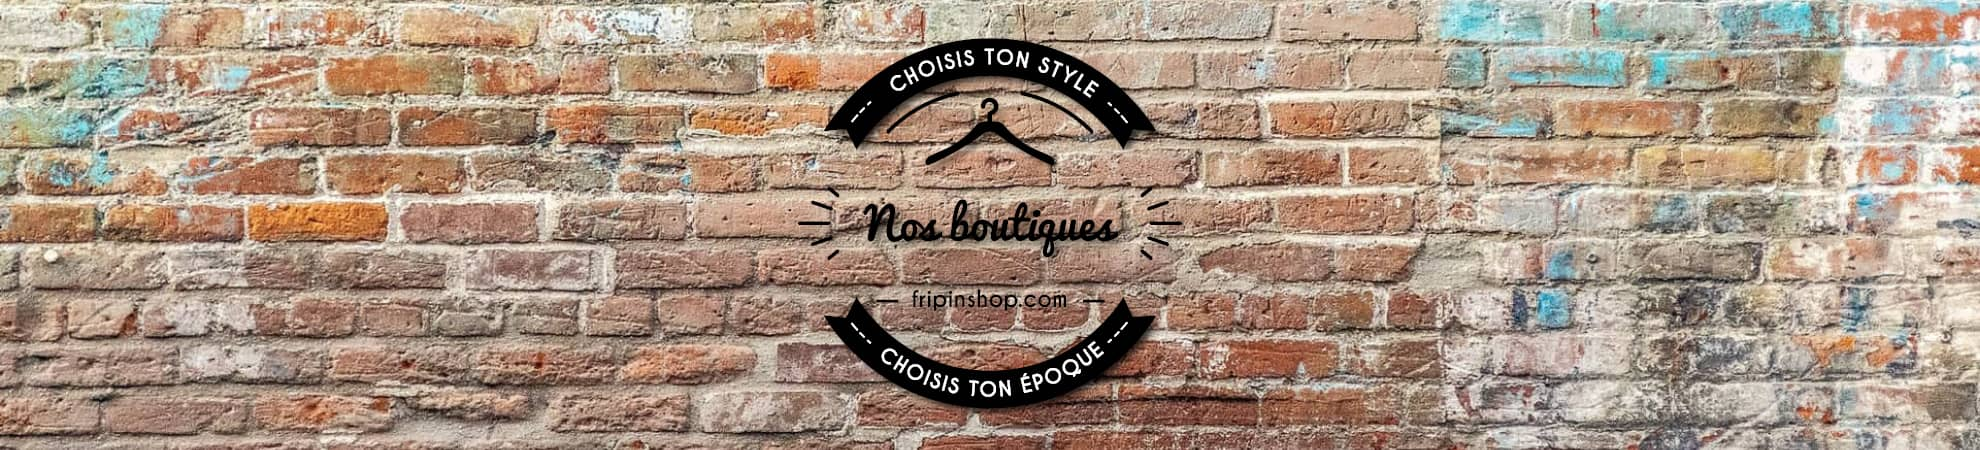 header-frip-in-shop-nos-boutiques